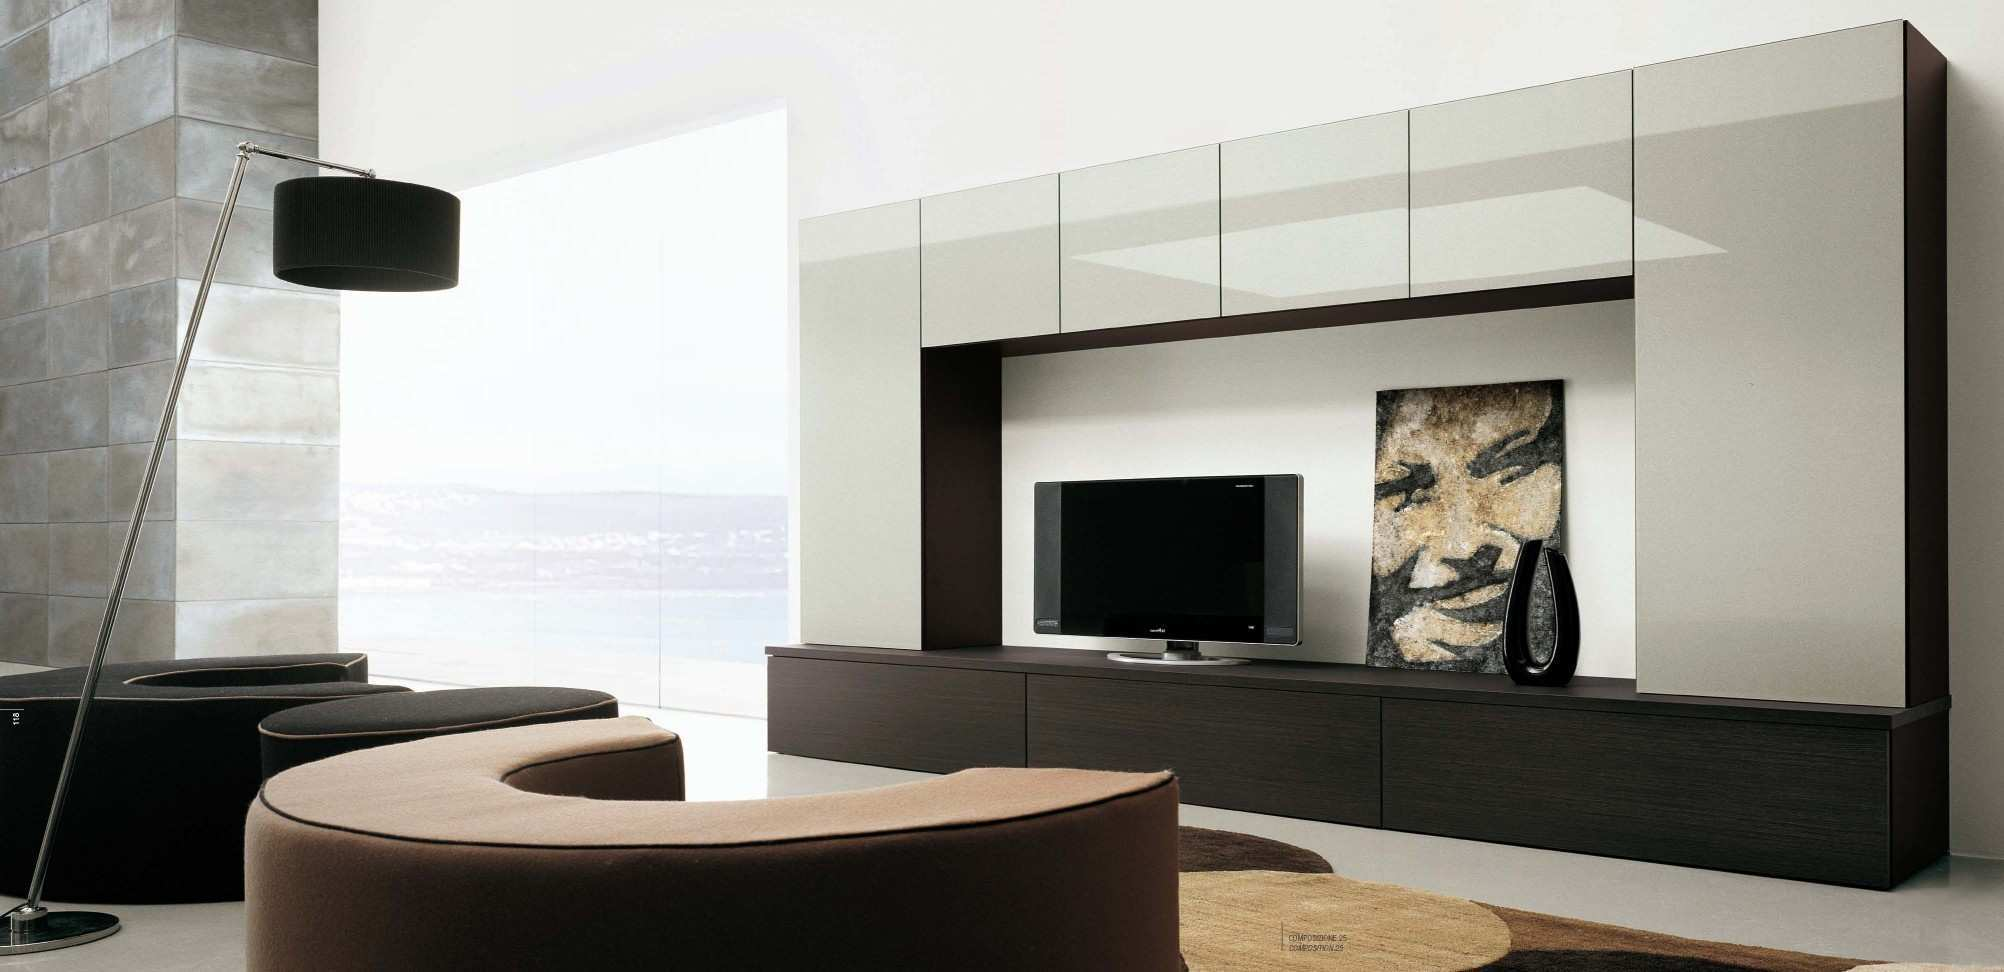 Outstanding Simple Chic Wall Unit For Living Room Interior